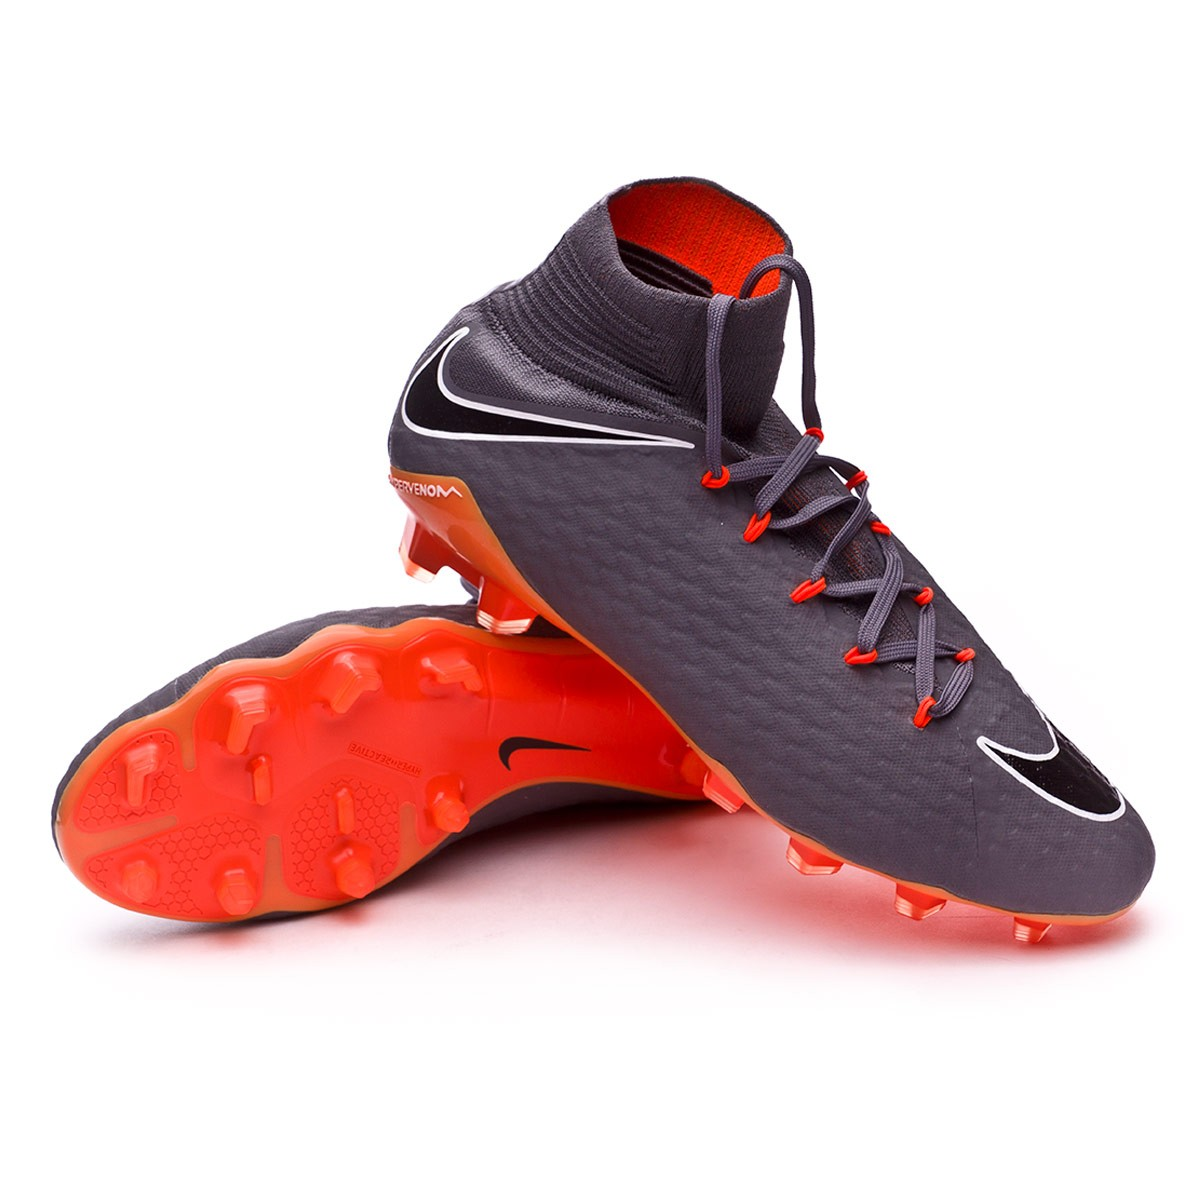 e89102006e5 Football Boots Nike Hypervenom Phantom III Pro DF FG Dark grey-Total ...